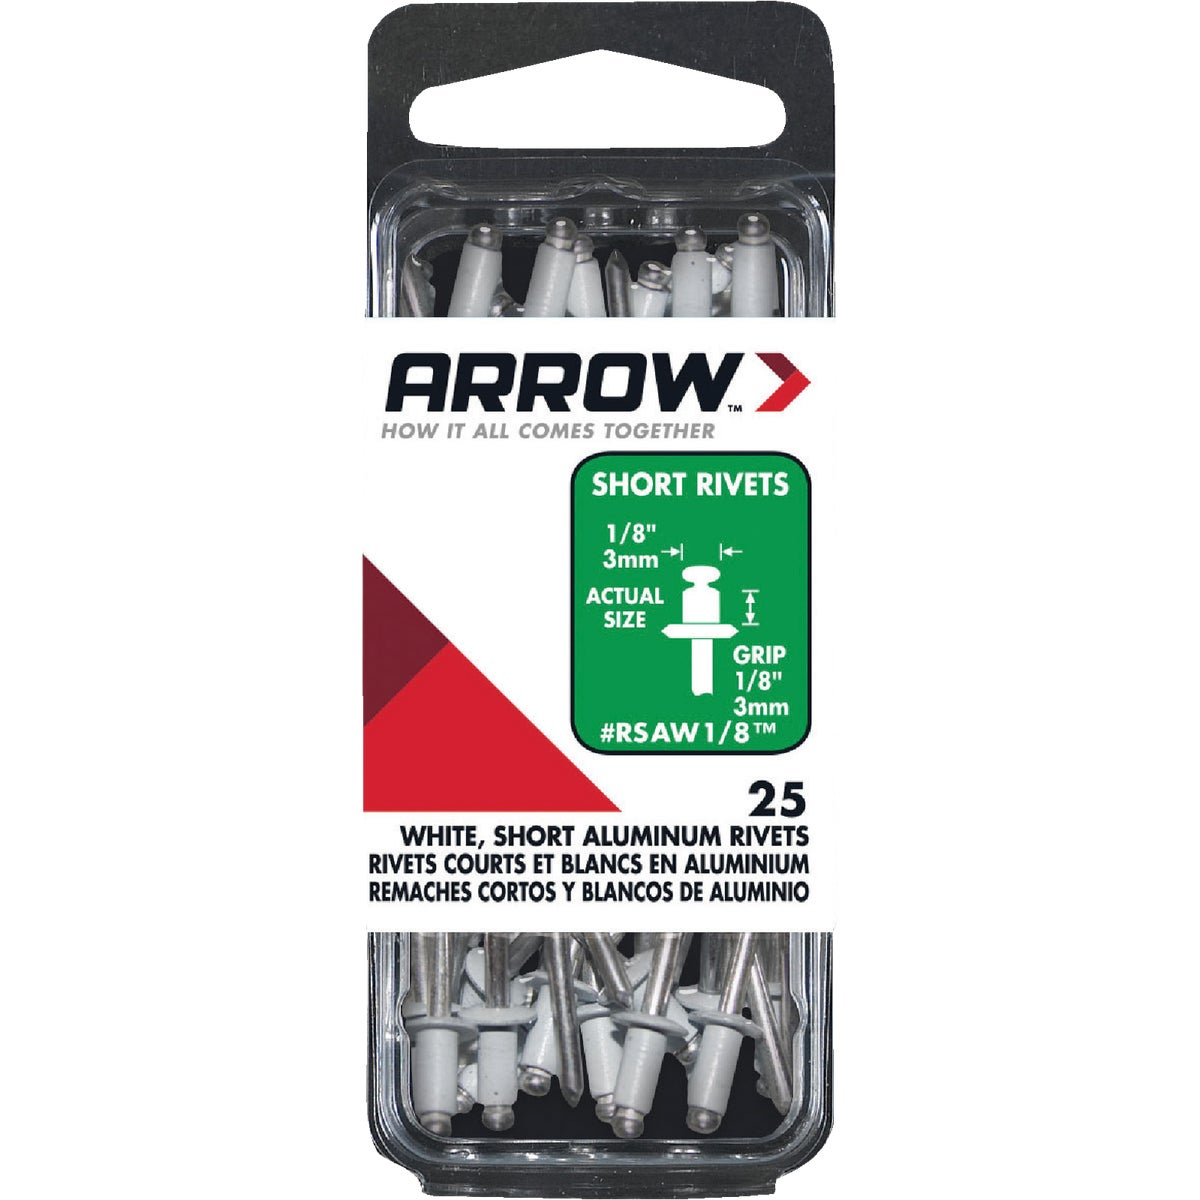 1/8X1/8 WHT ALUM RIVET - RSAW1/8 by Arrow Fastener Co